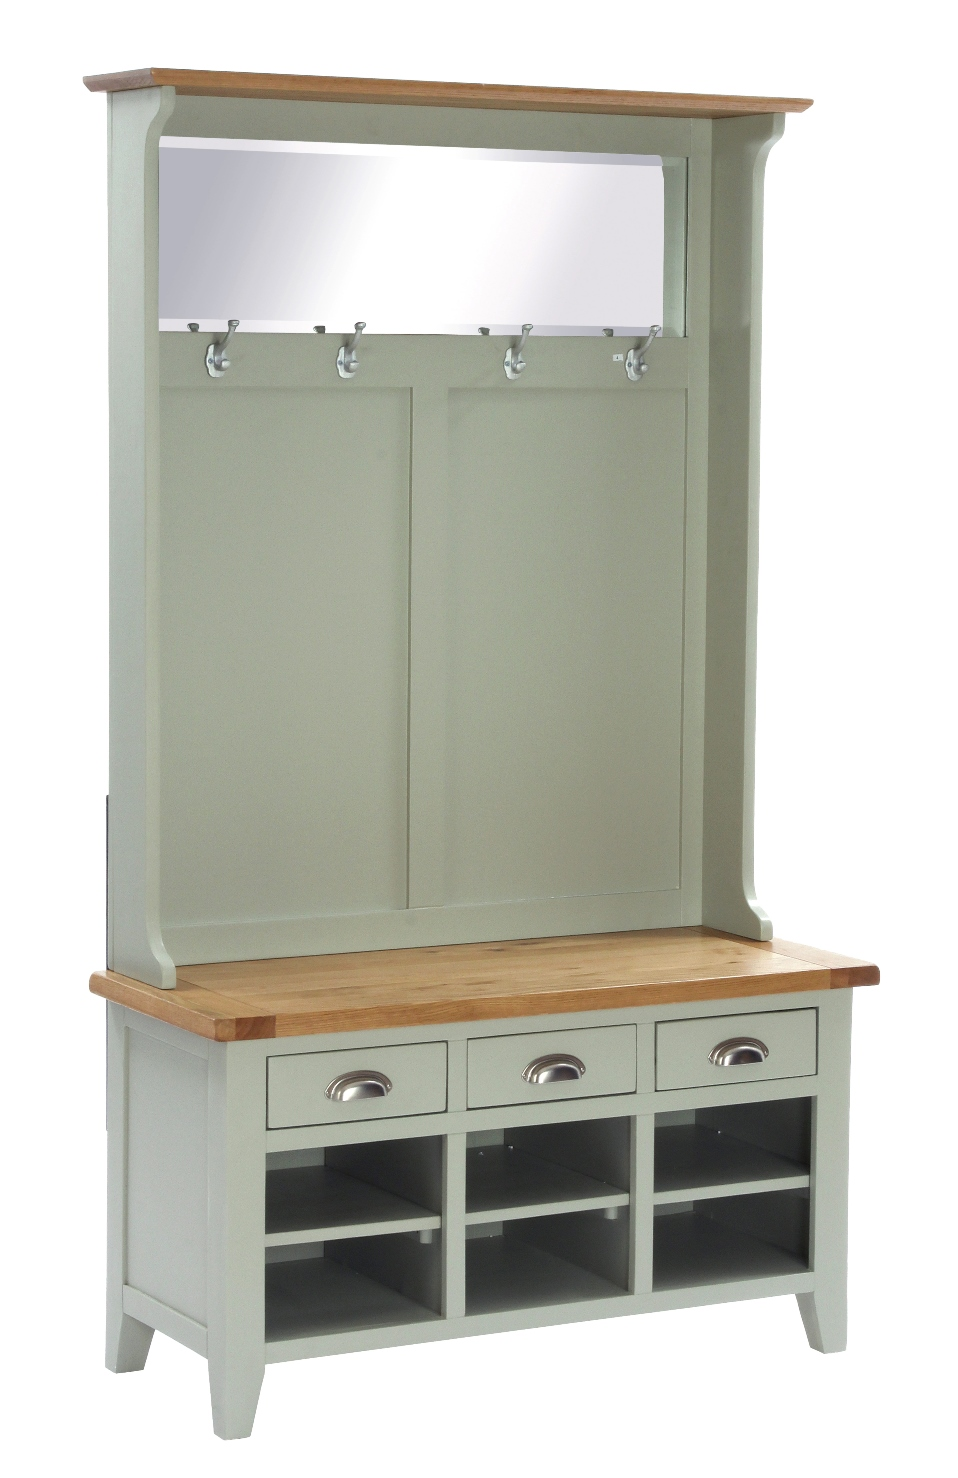 Hall Unit with Bench, Shoe Storage, Coat Rack and Mirror  w 110 x d 45 x h 190 cm  €986  Product Code: ANB115